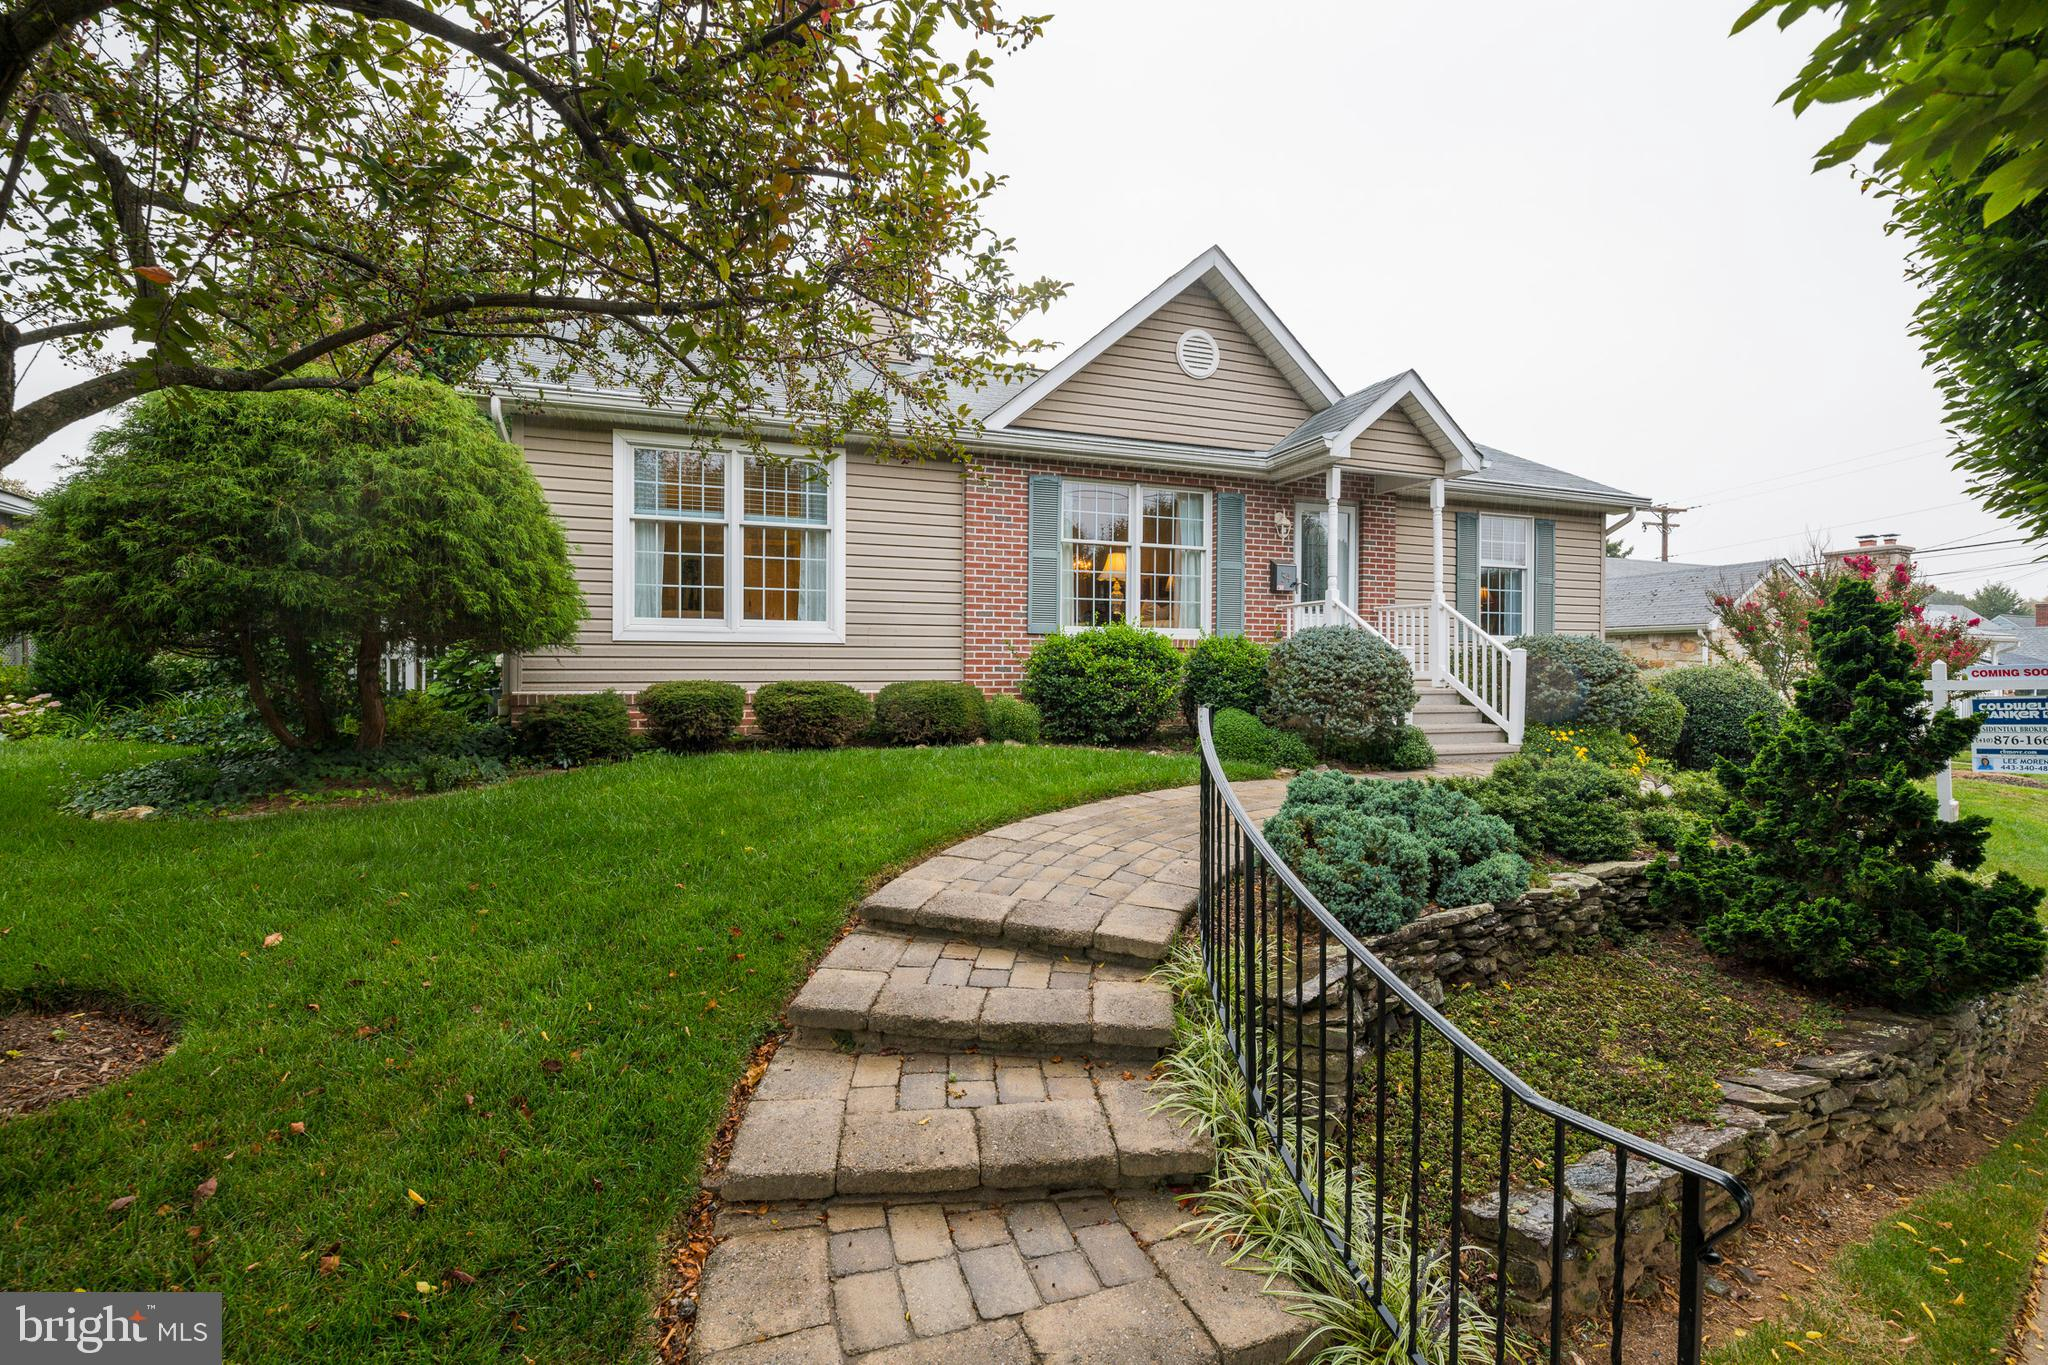 54 CHASE St, Westminster, MD, 21157